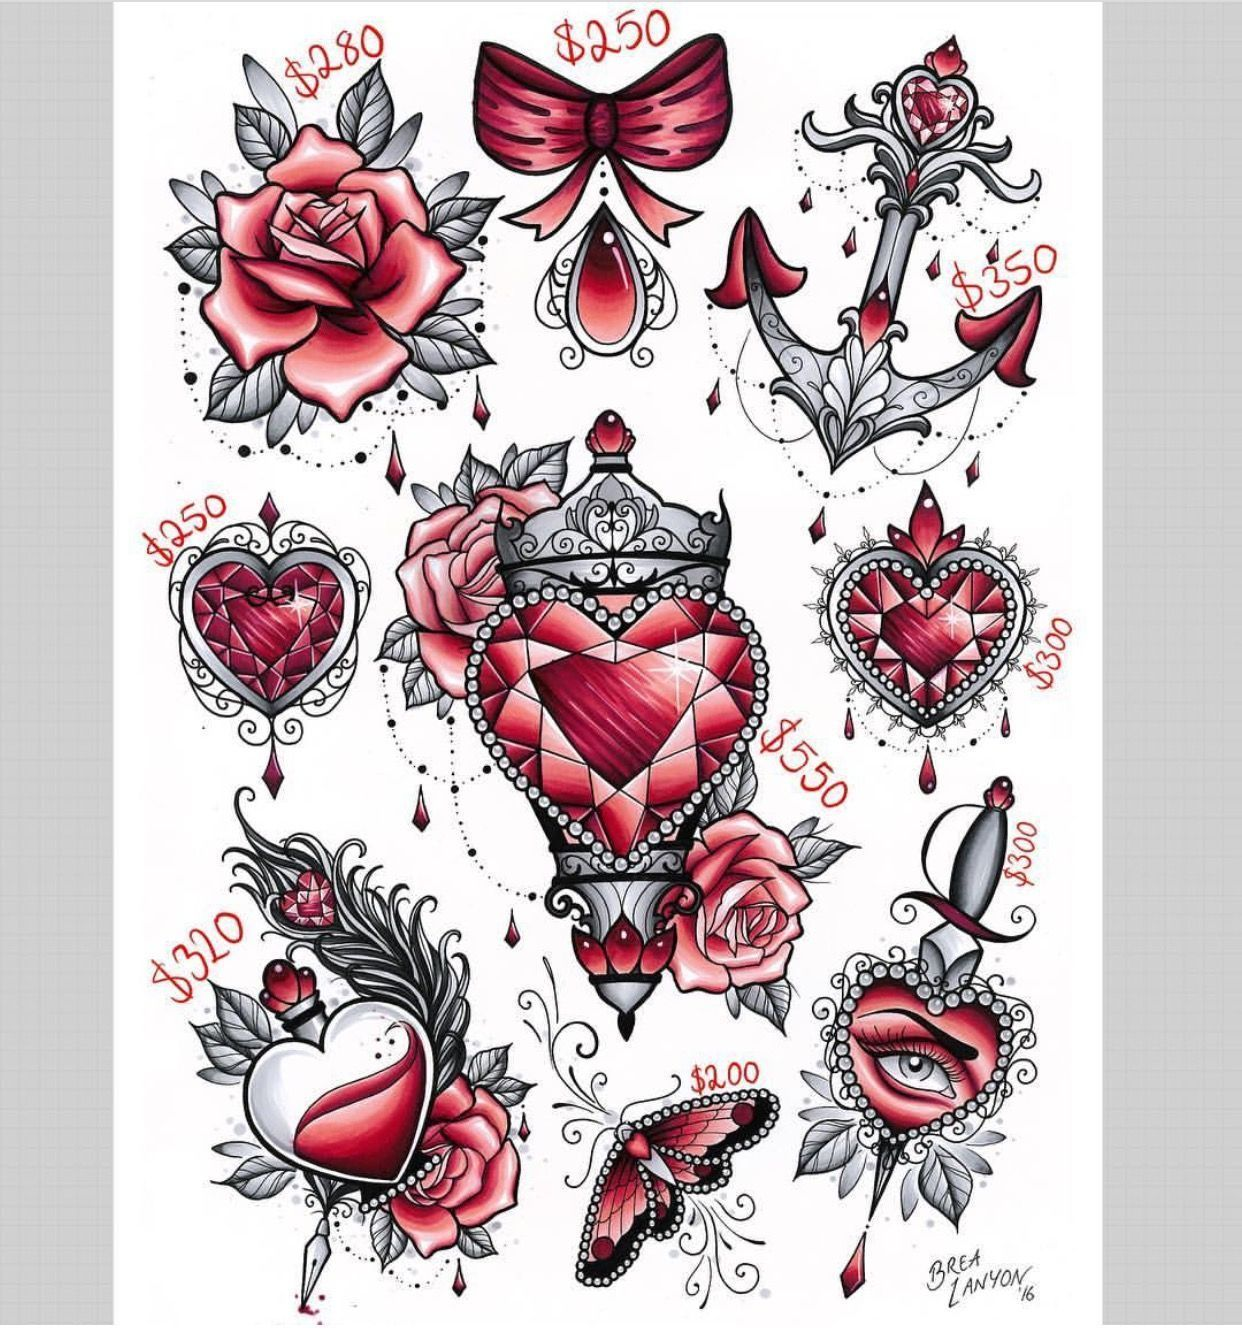 Realistic Knife In The Heart Drawing: Heart-shaped Bottle Tattoo Design #TraditionalTattoos